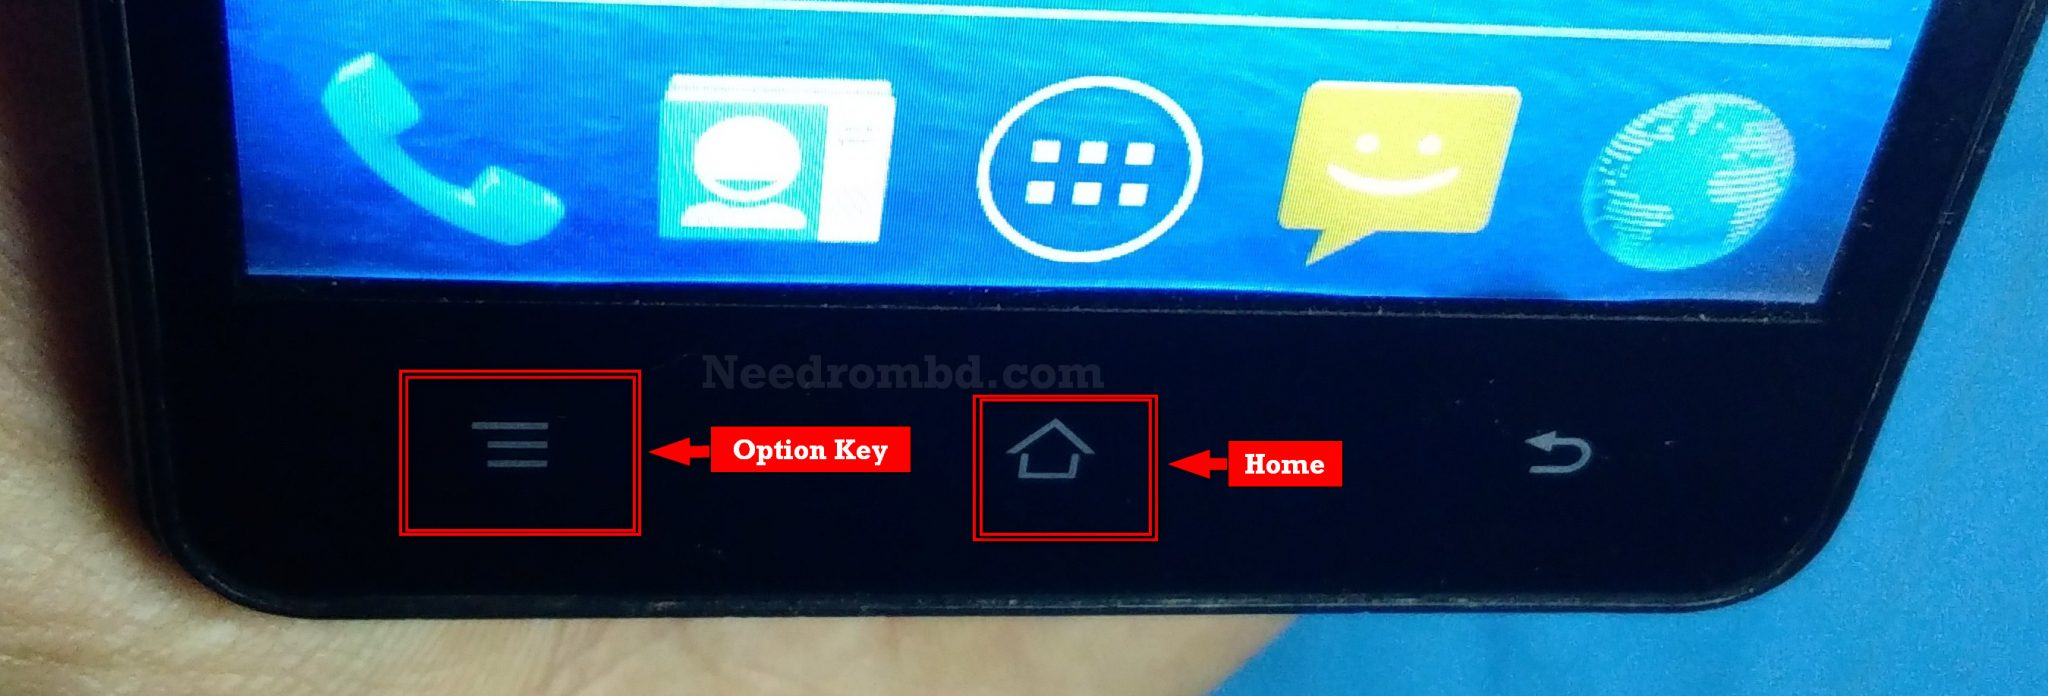 Option Key